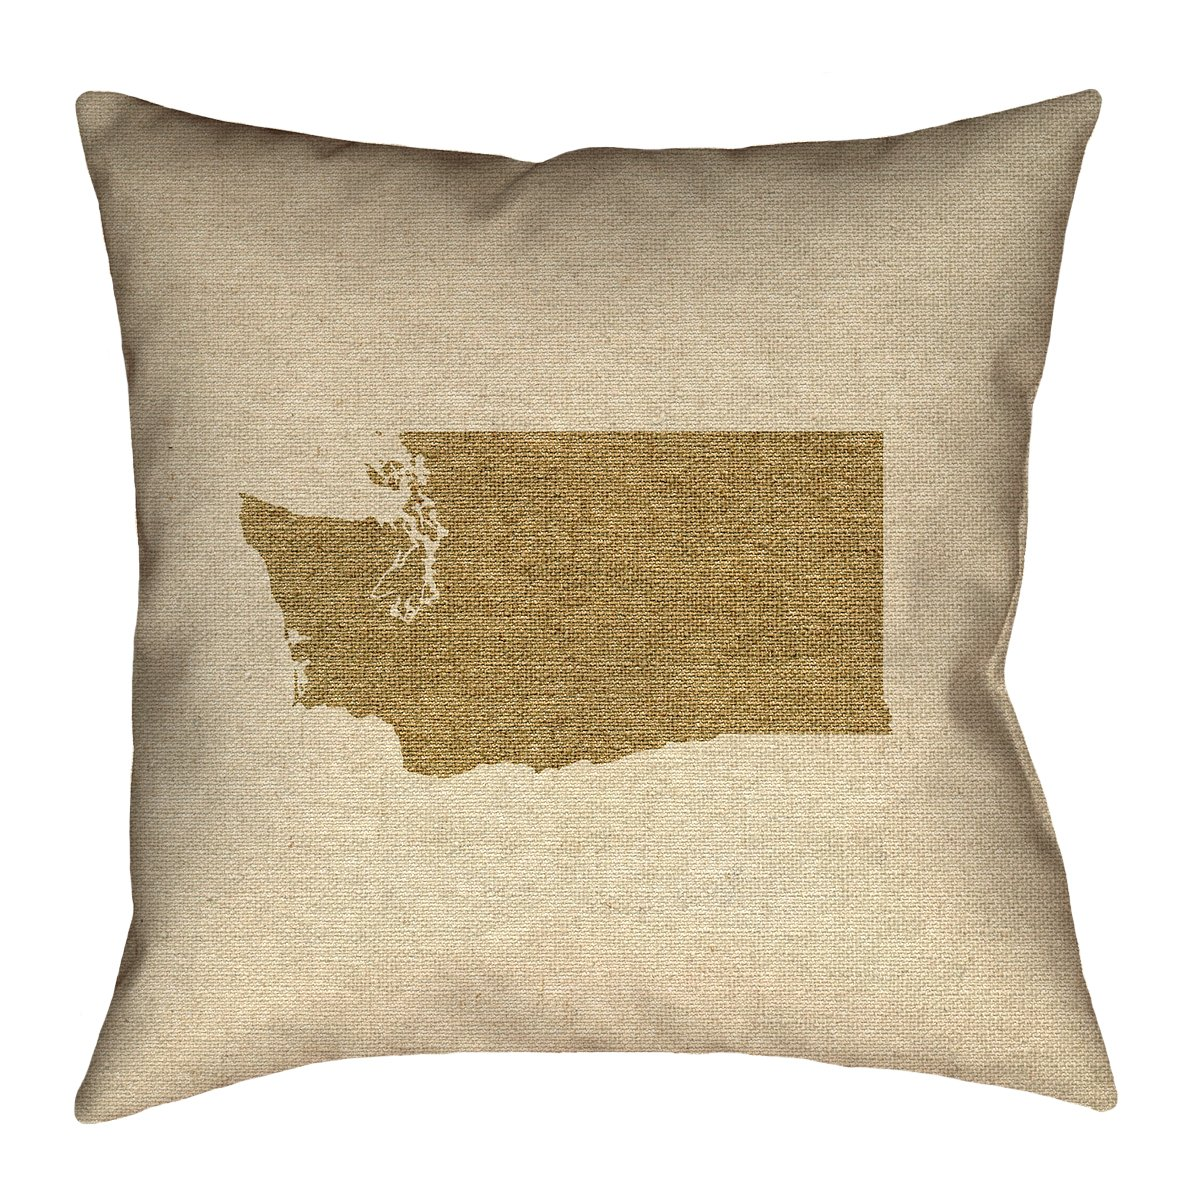 Double Sided Print with Concealed Zipper /& Insert Updated Fabric ArtVerse Katelyn Smith Washington Canvas 14 x 14 Pillow-Faux Linen